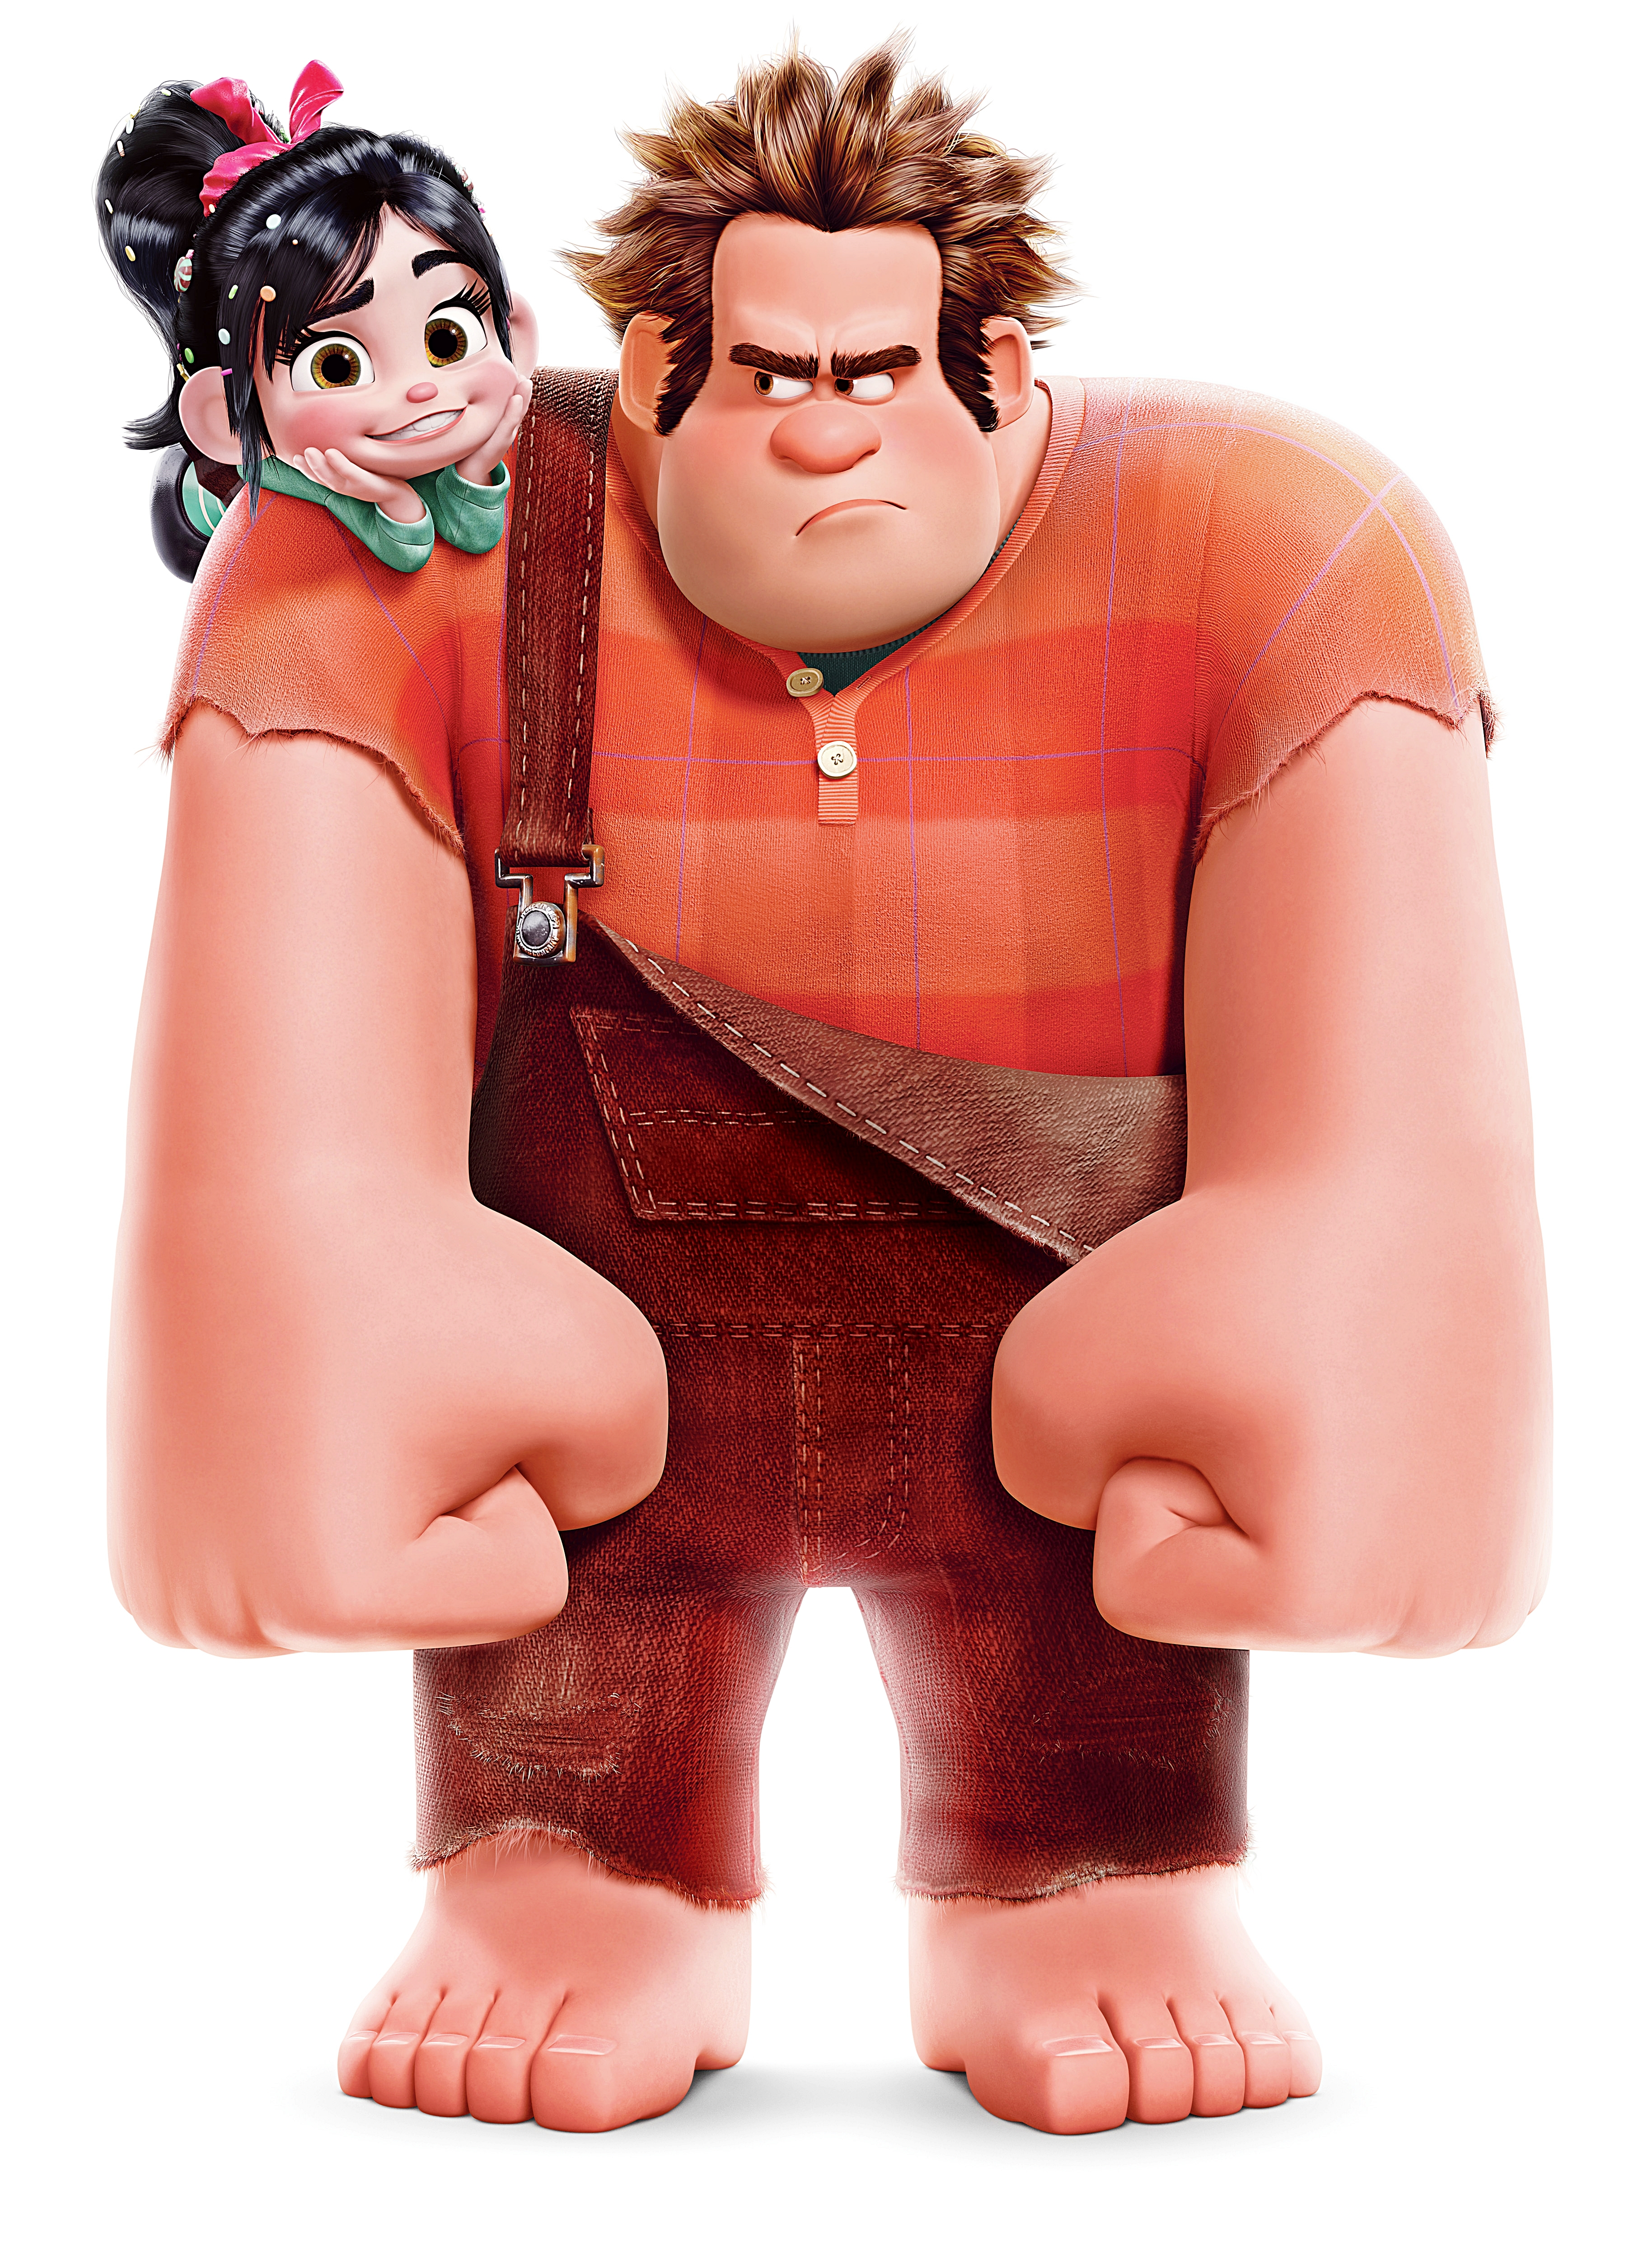 Wreck It Ralph Wallpapers High Quality Download Free